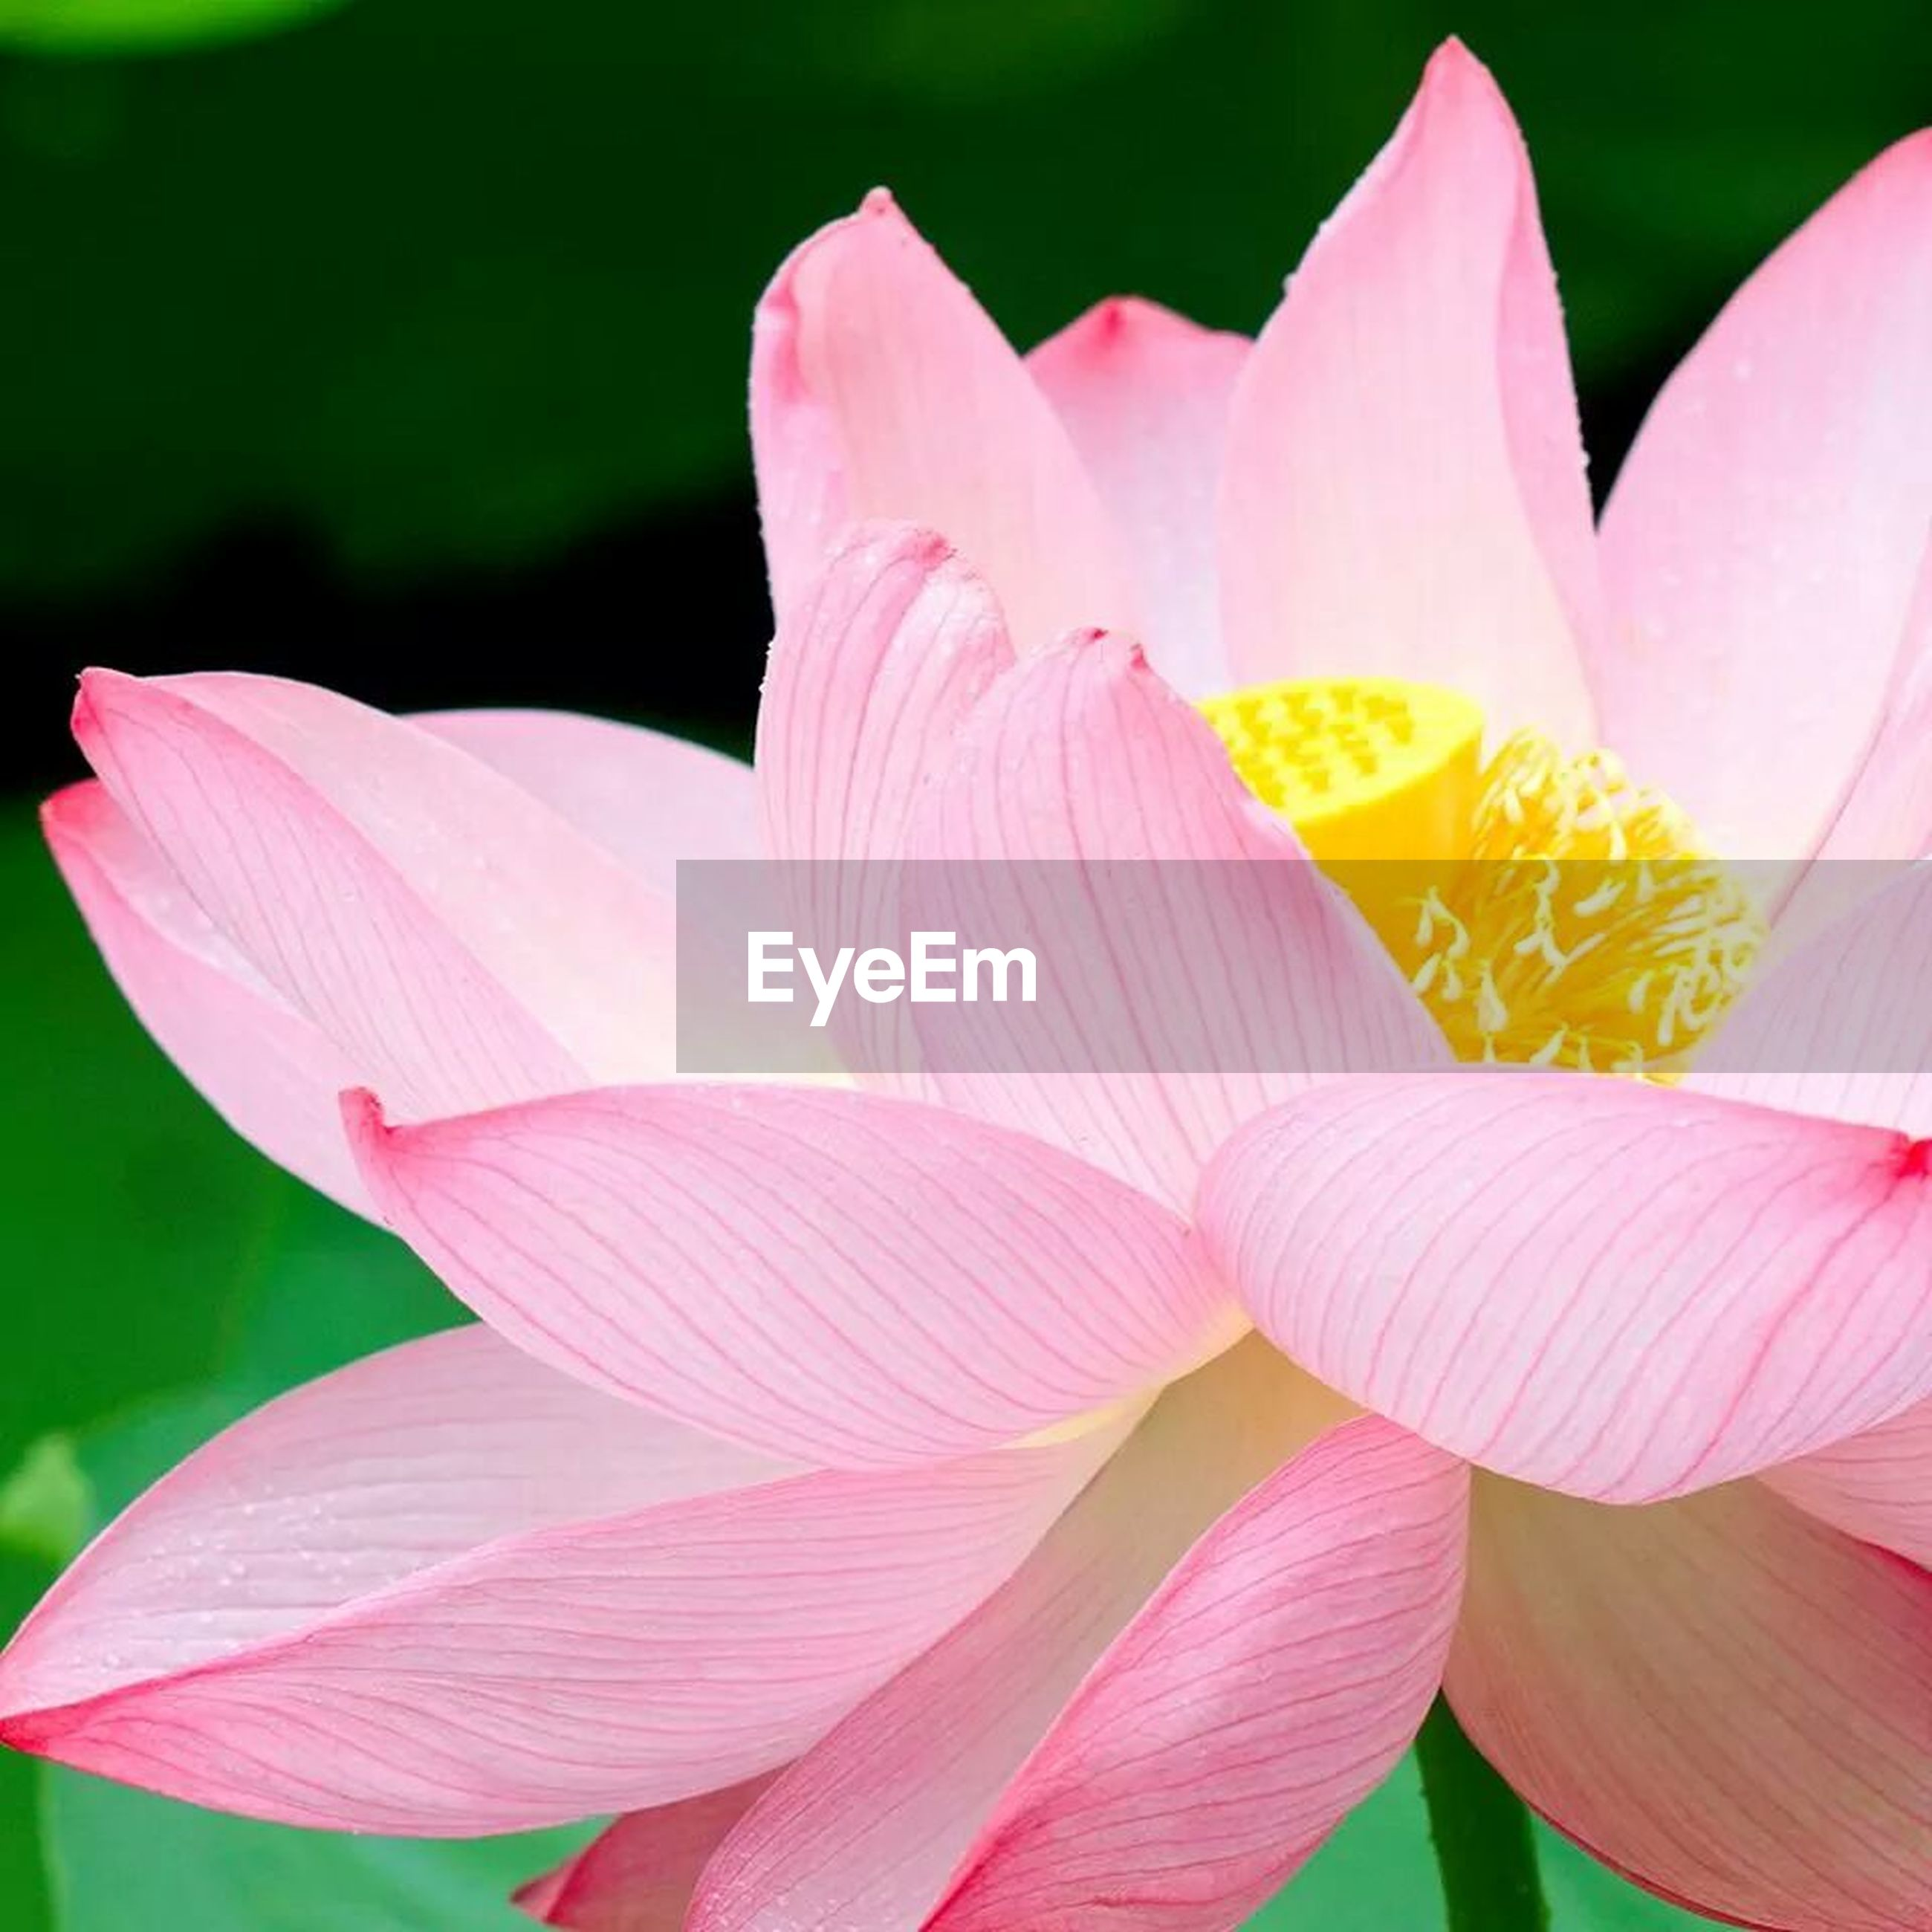 flower, petal, freshness, flower head, fragility, pink color, growth, beauty in nature, close-up, nature, focus on foreground, blooming, stamen, single flower, plant, pollen, in bloom, blossom, stem, pink